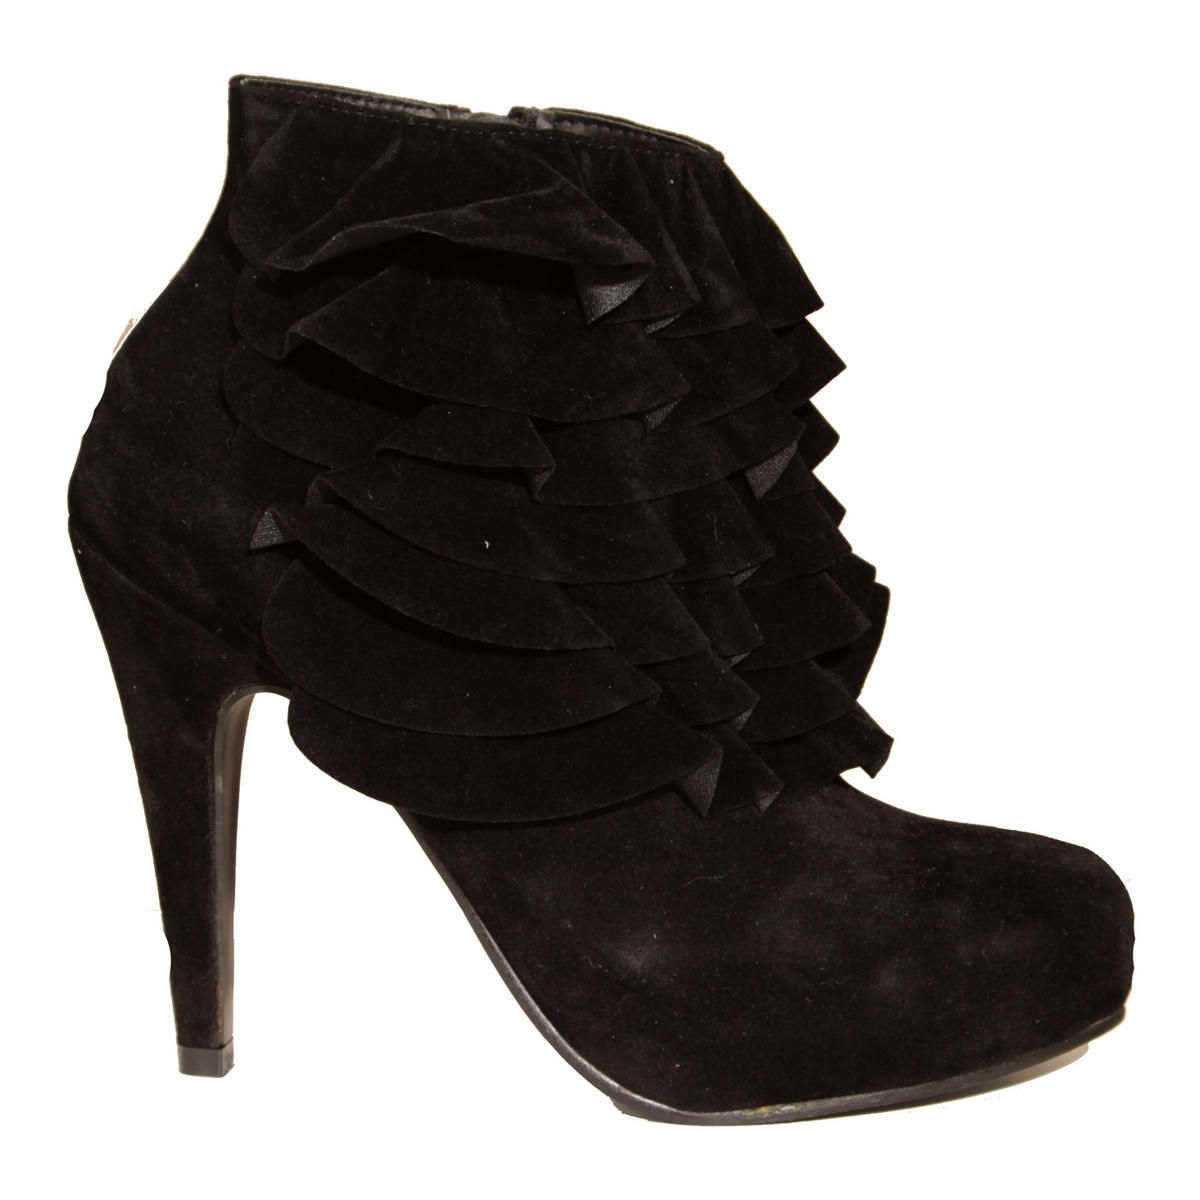 Black Ruffle Ankle Shoe Boot Preview